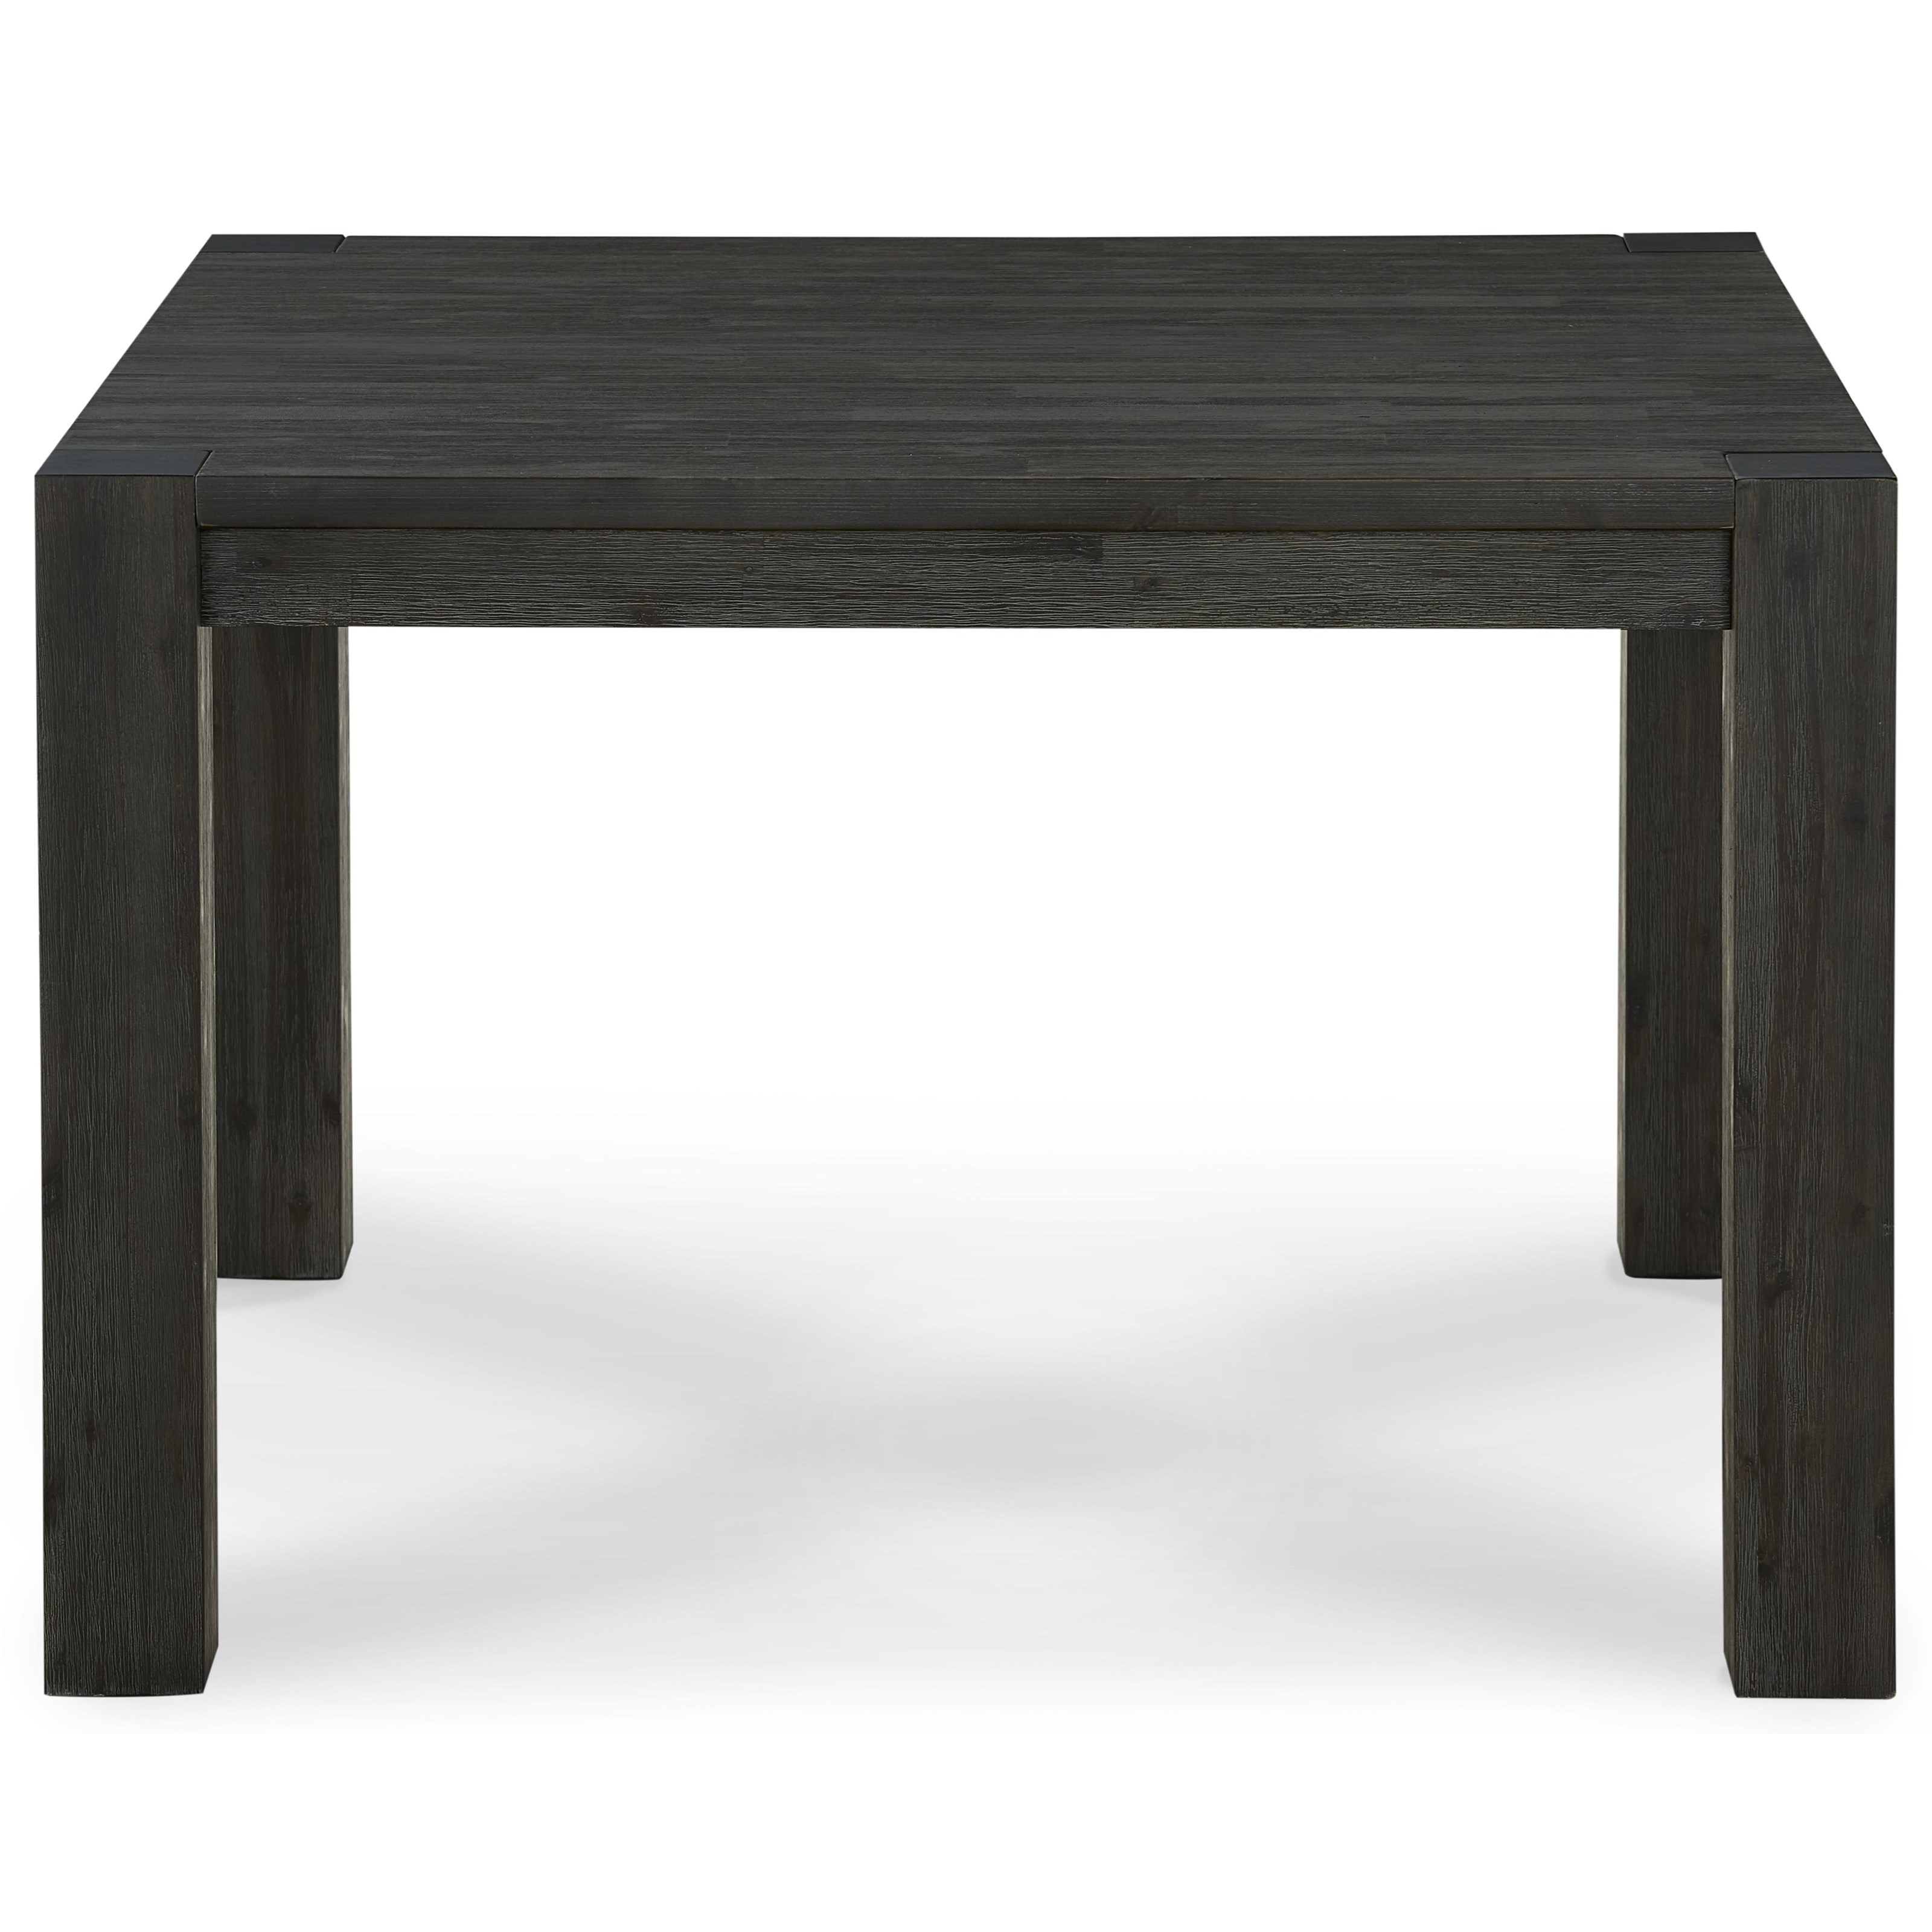 Meadow Solid Wood Square Counter Table at Sadler's Home Furnishings